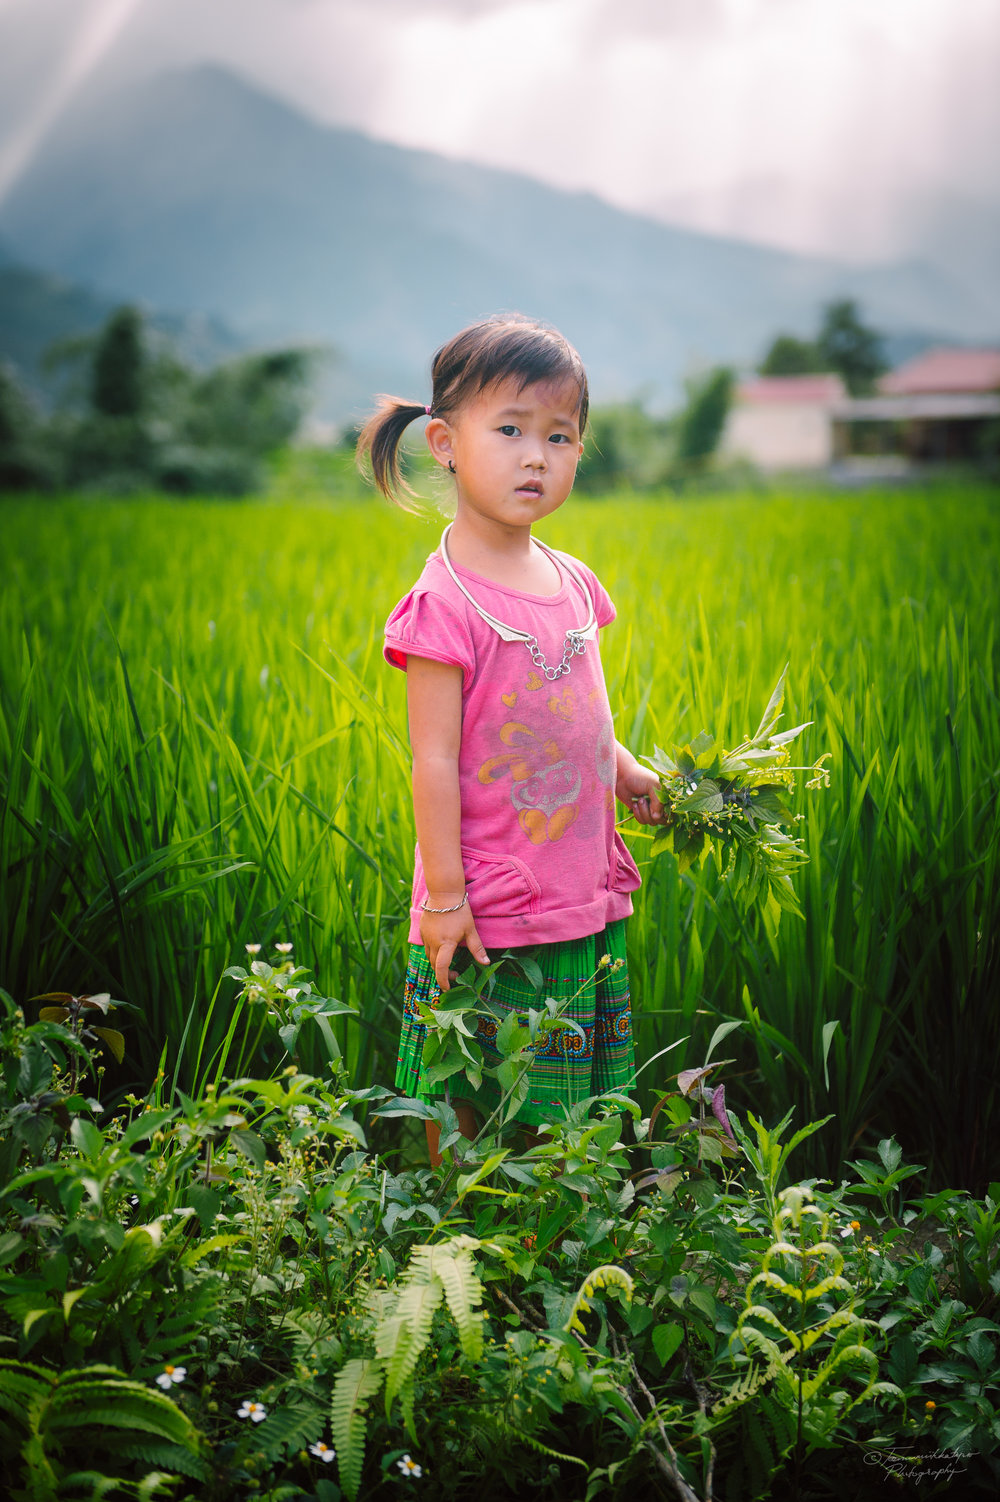 A girl picking flowers. The necklace is believed to bring good luck and keep the child safe.